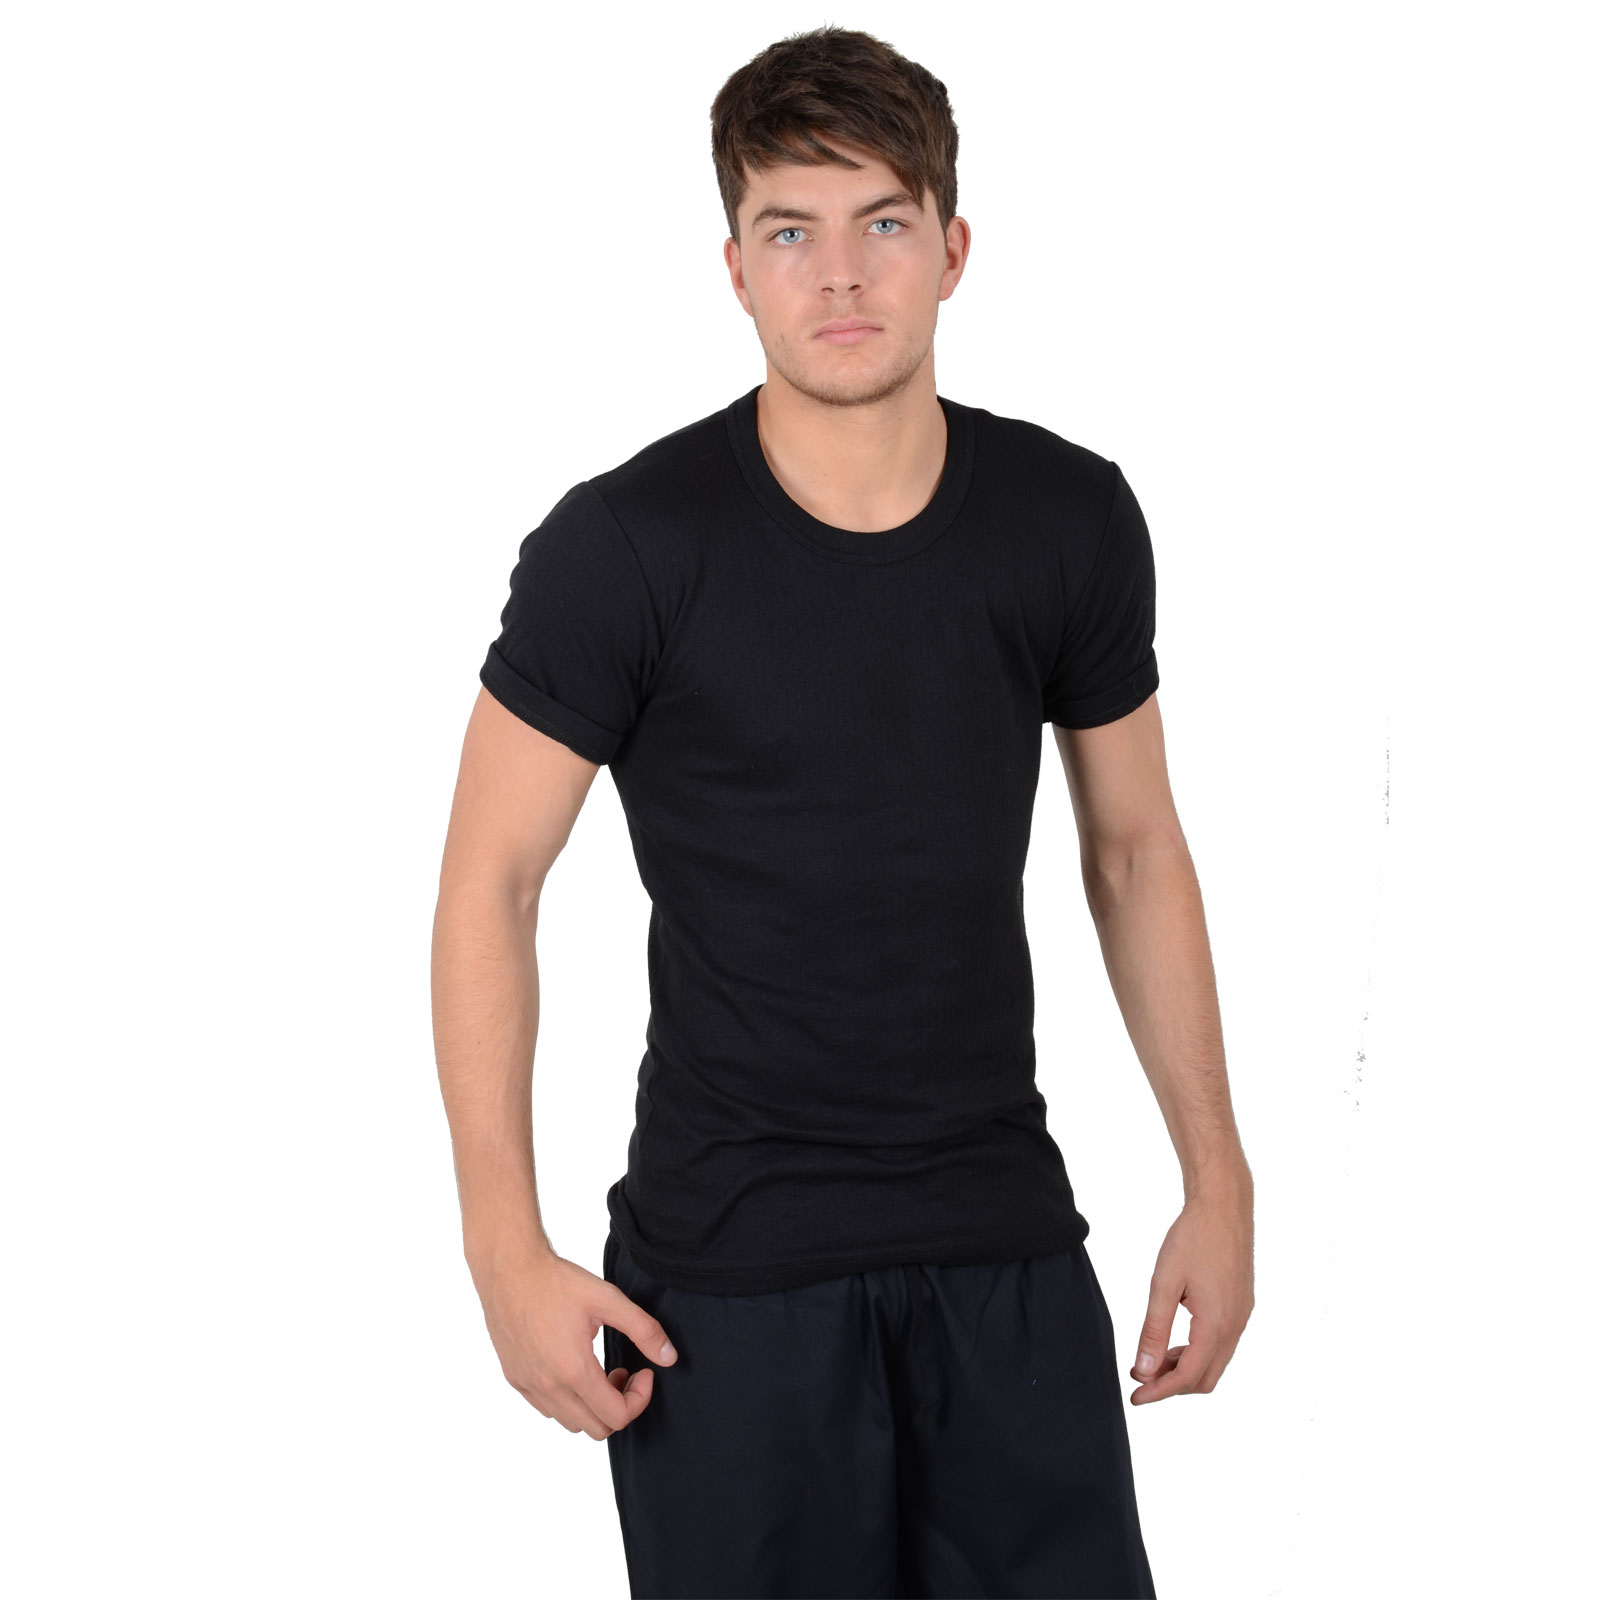 Welcome to the best damn guide to men's t-shirts on the internet. The History of the T-Shirt. While t-shirts have a distinctly modern feel, their origins — as an undershirt — go back over a century. T-shirts get their name from the T-shape formed by their boxy body and attached sleeves.